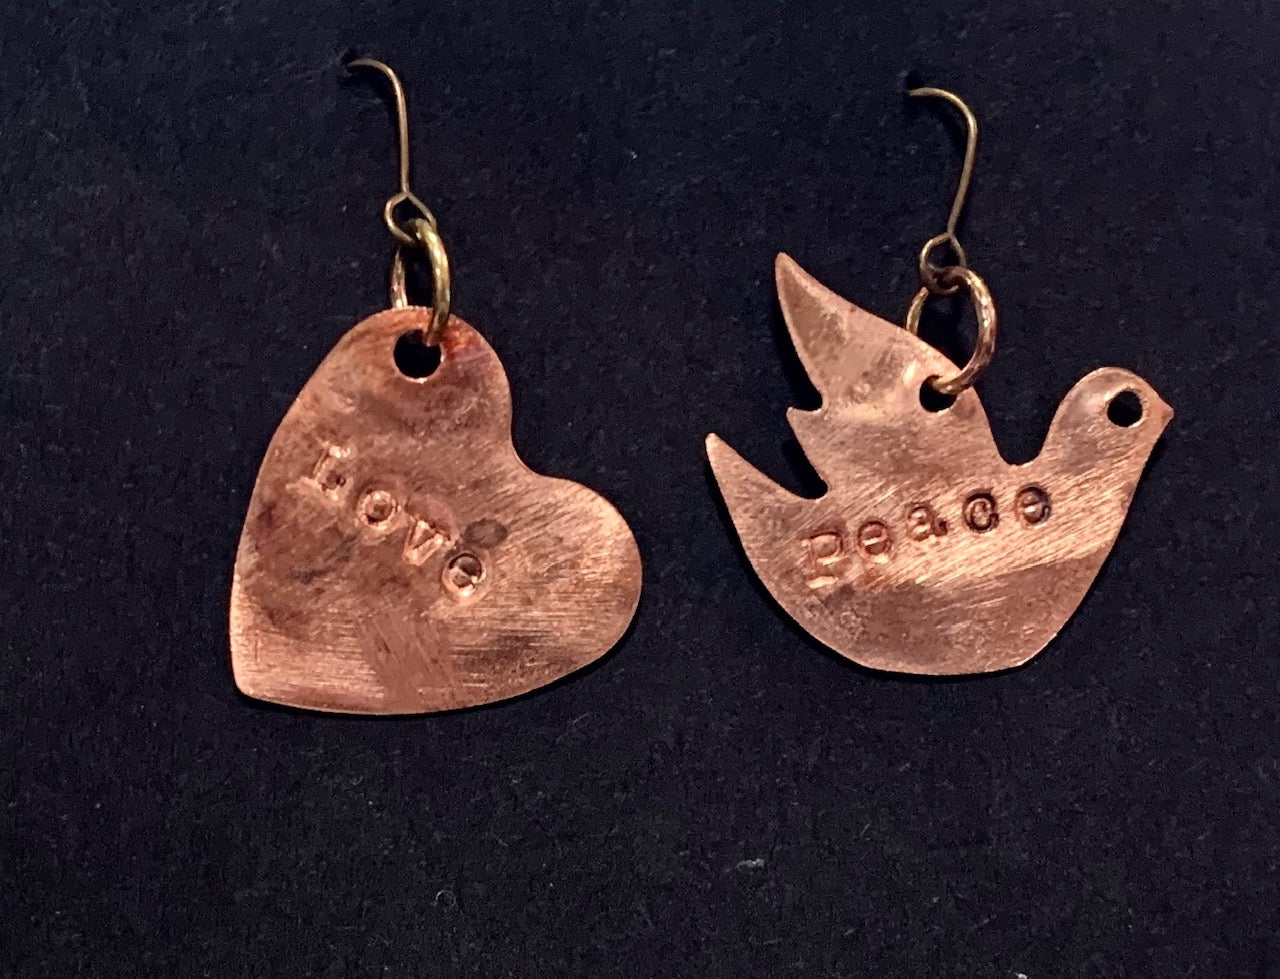 Copy of Peace Love Dove copper earrings